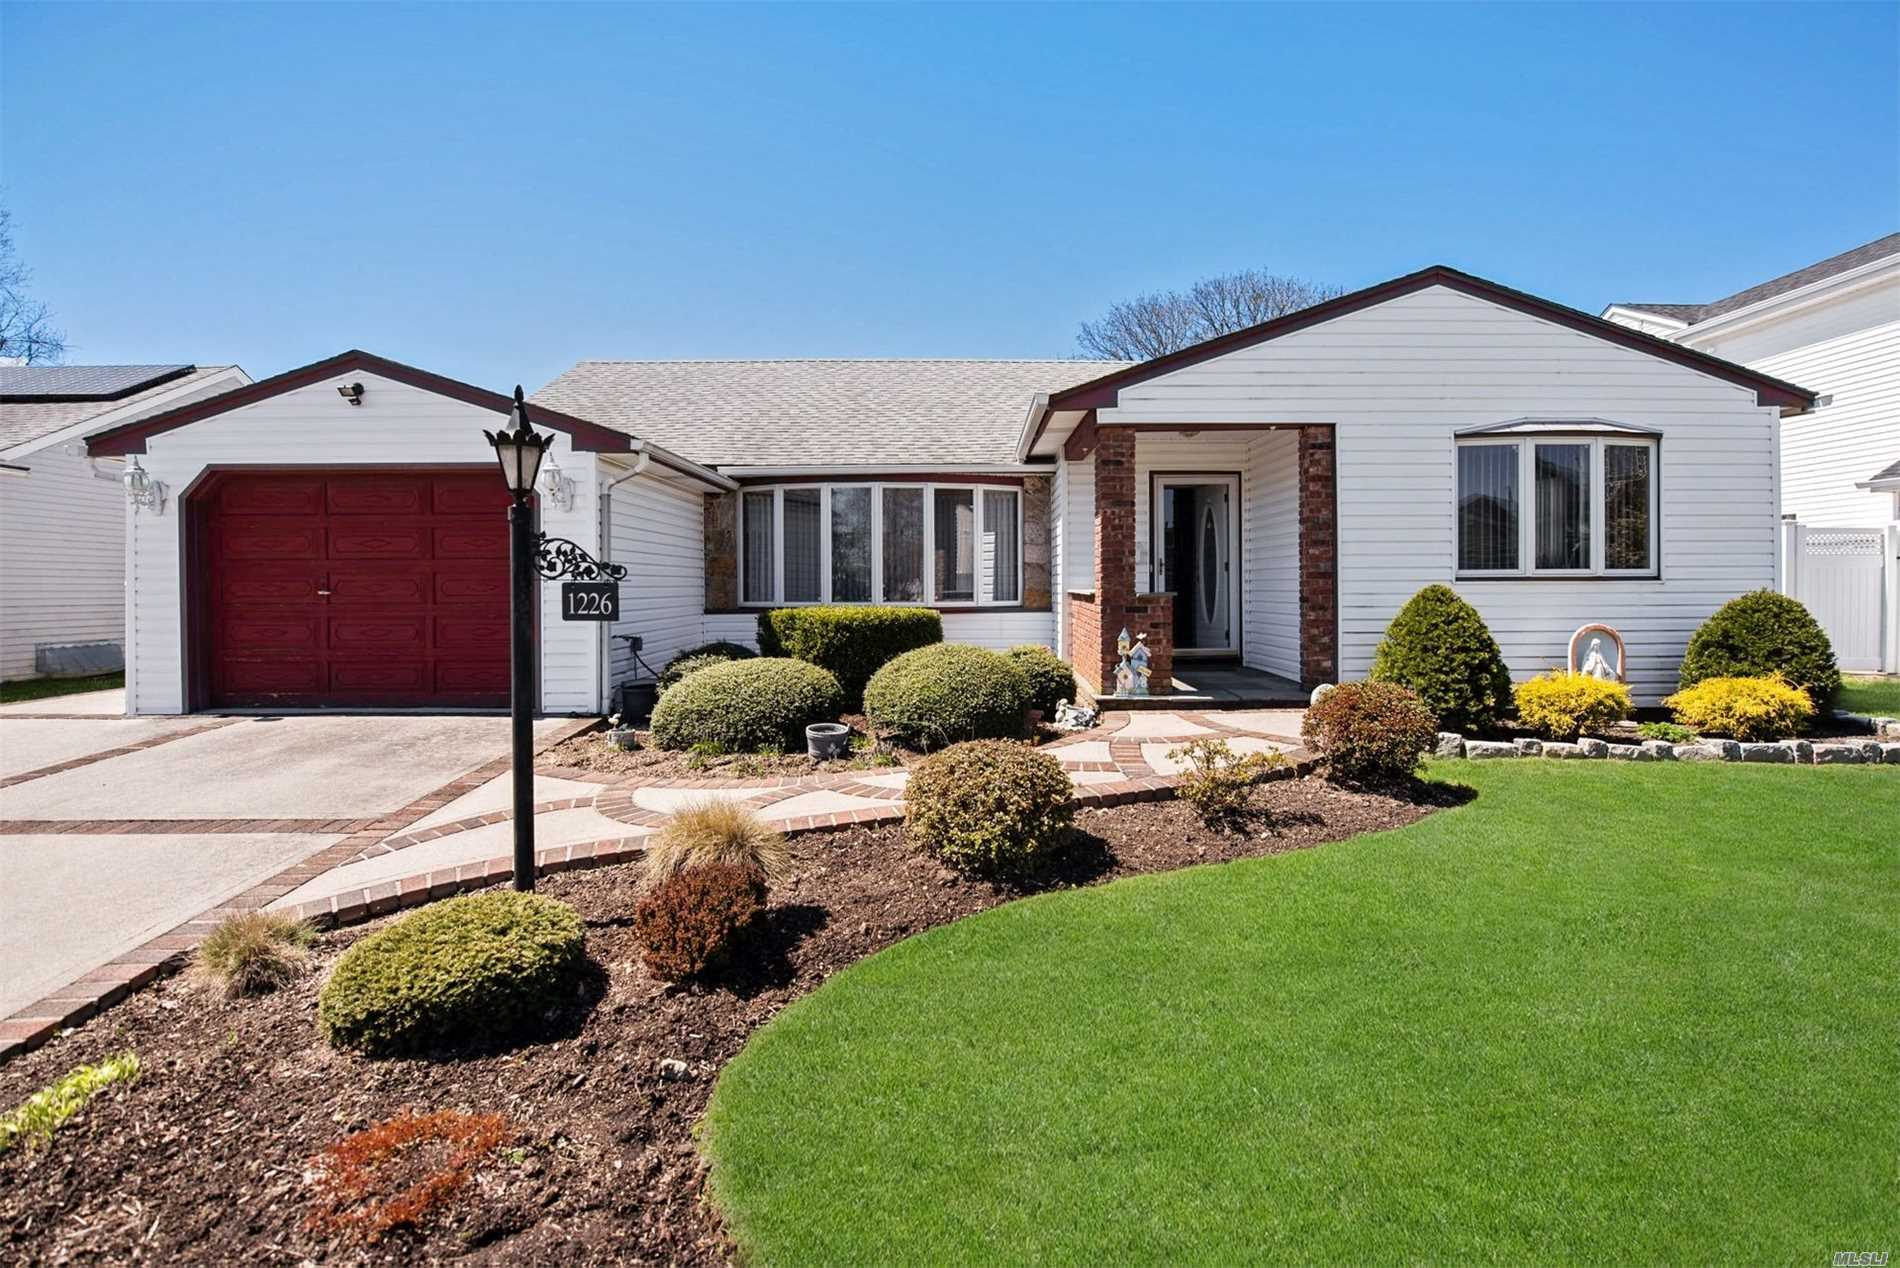 1226 Campbell Rd, Wantagh, New York